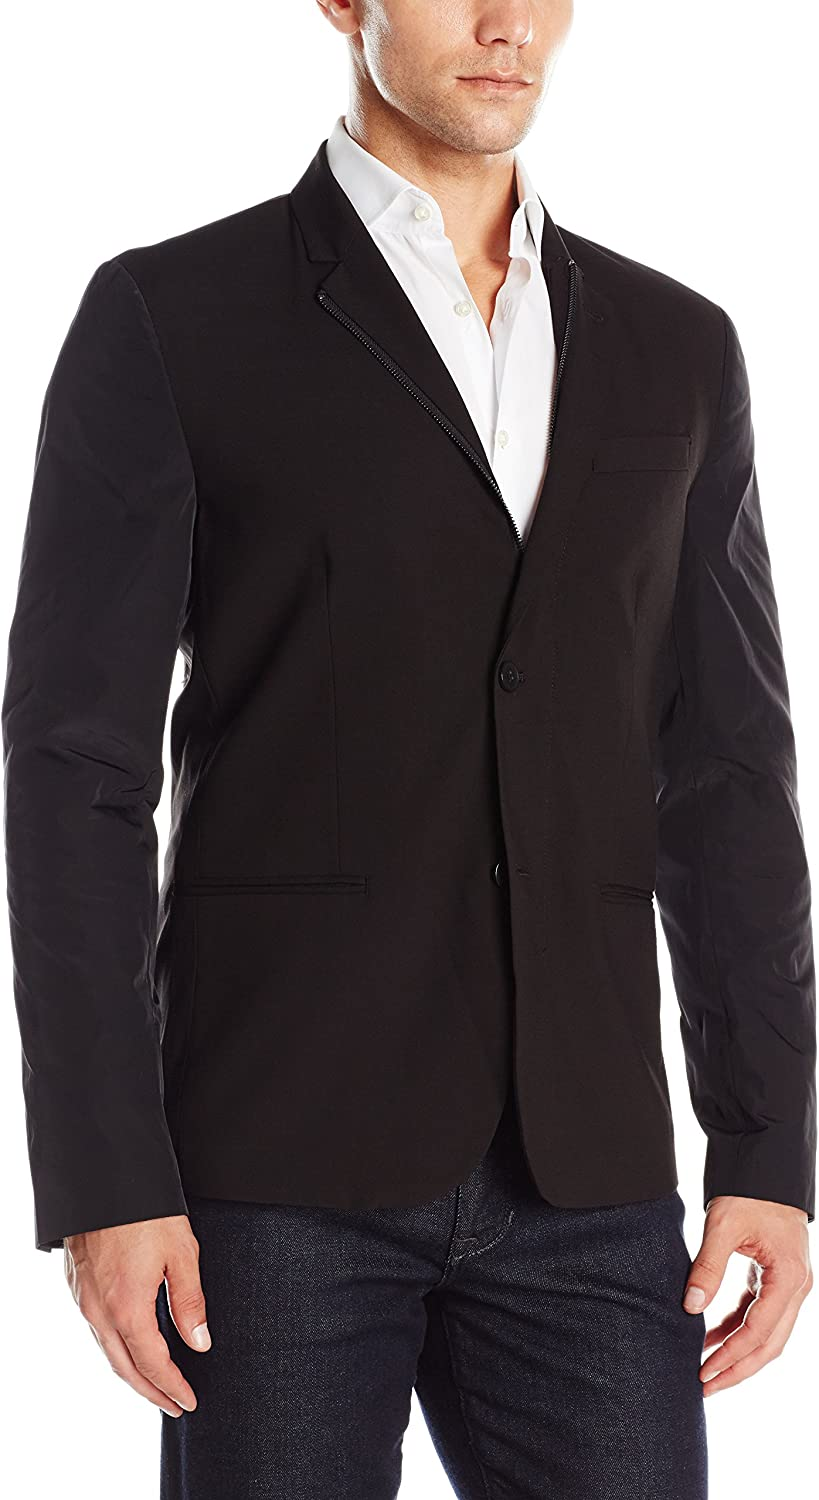 Kenneth Cole REACTION Mens Two Button Slim Fit Sport Coat